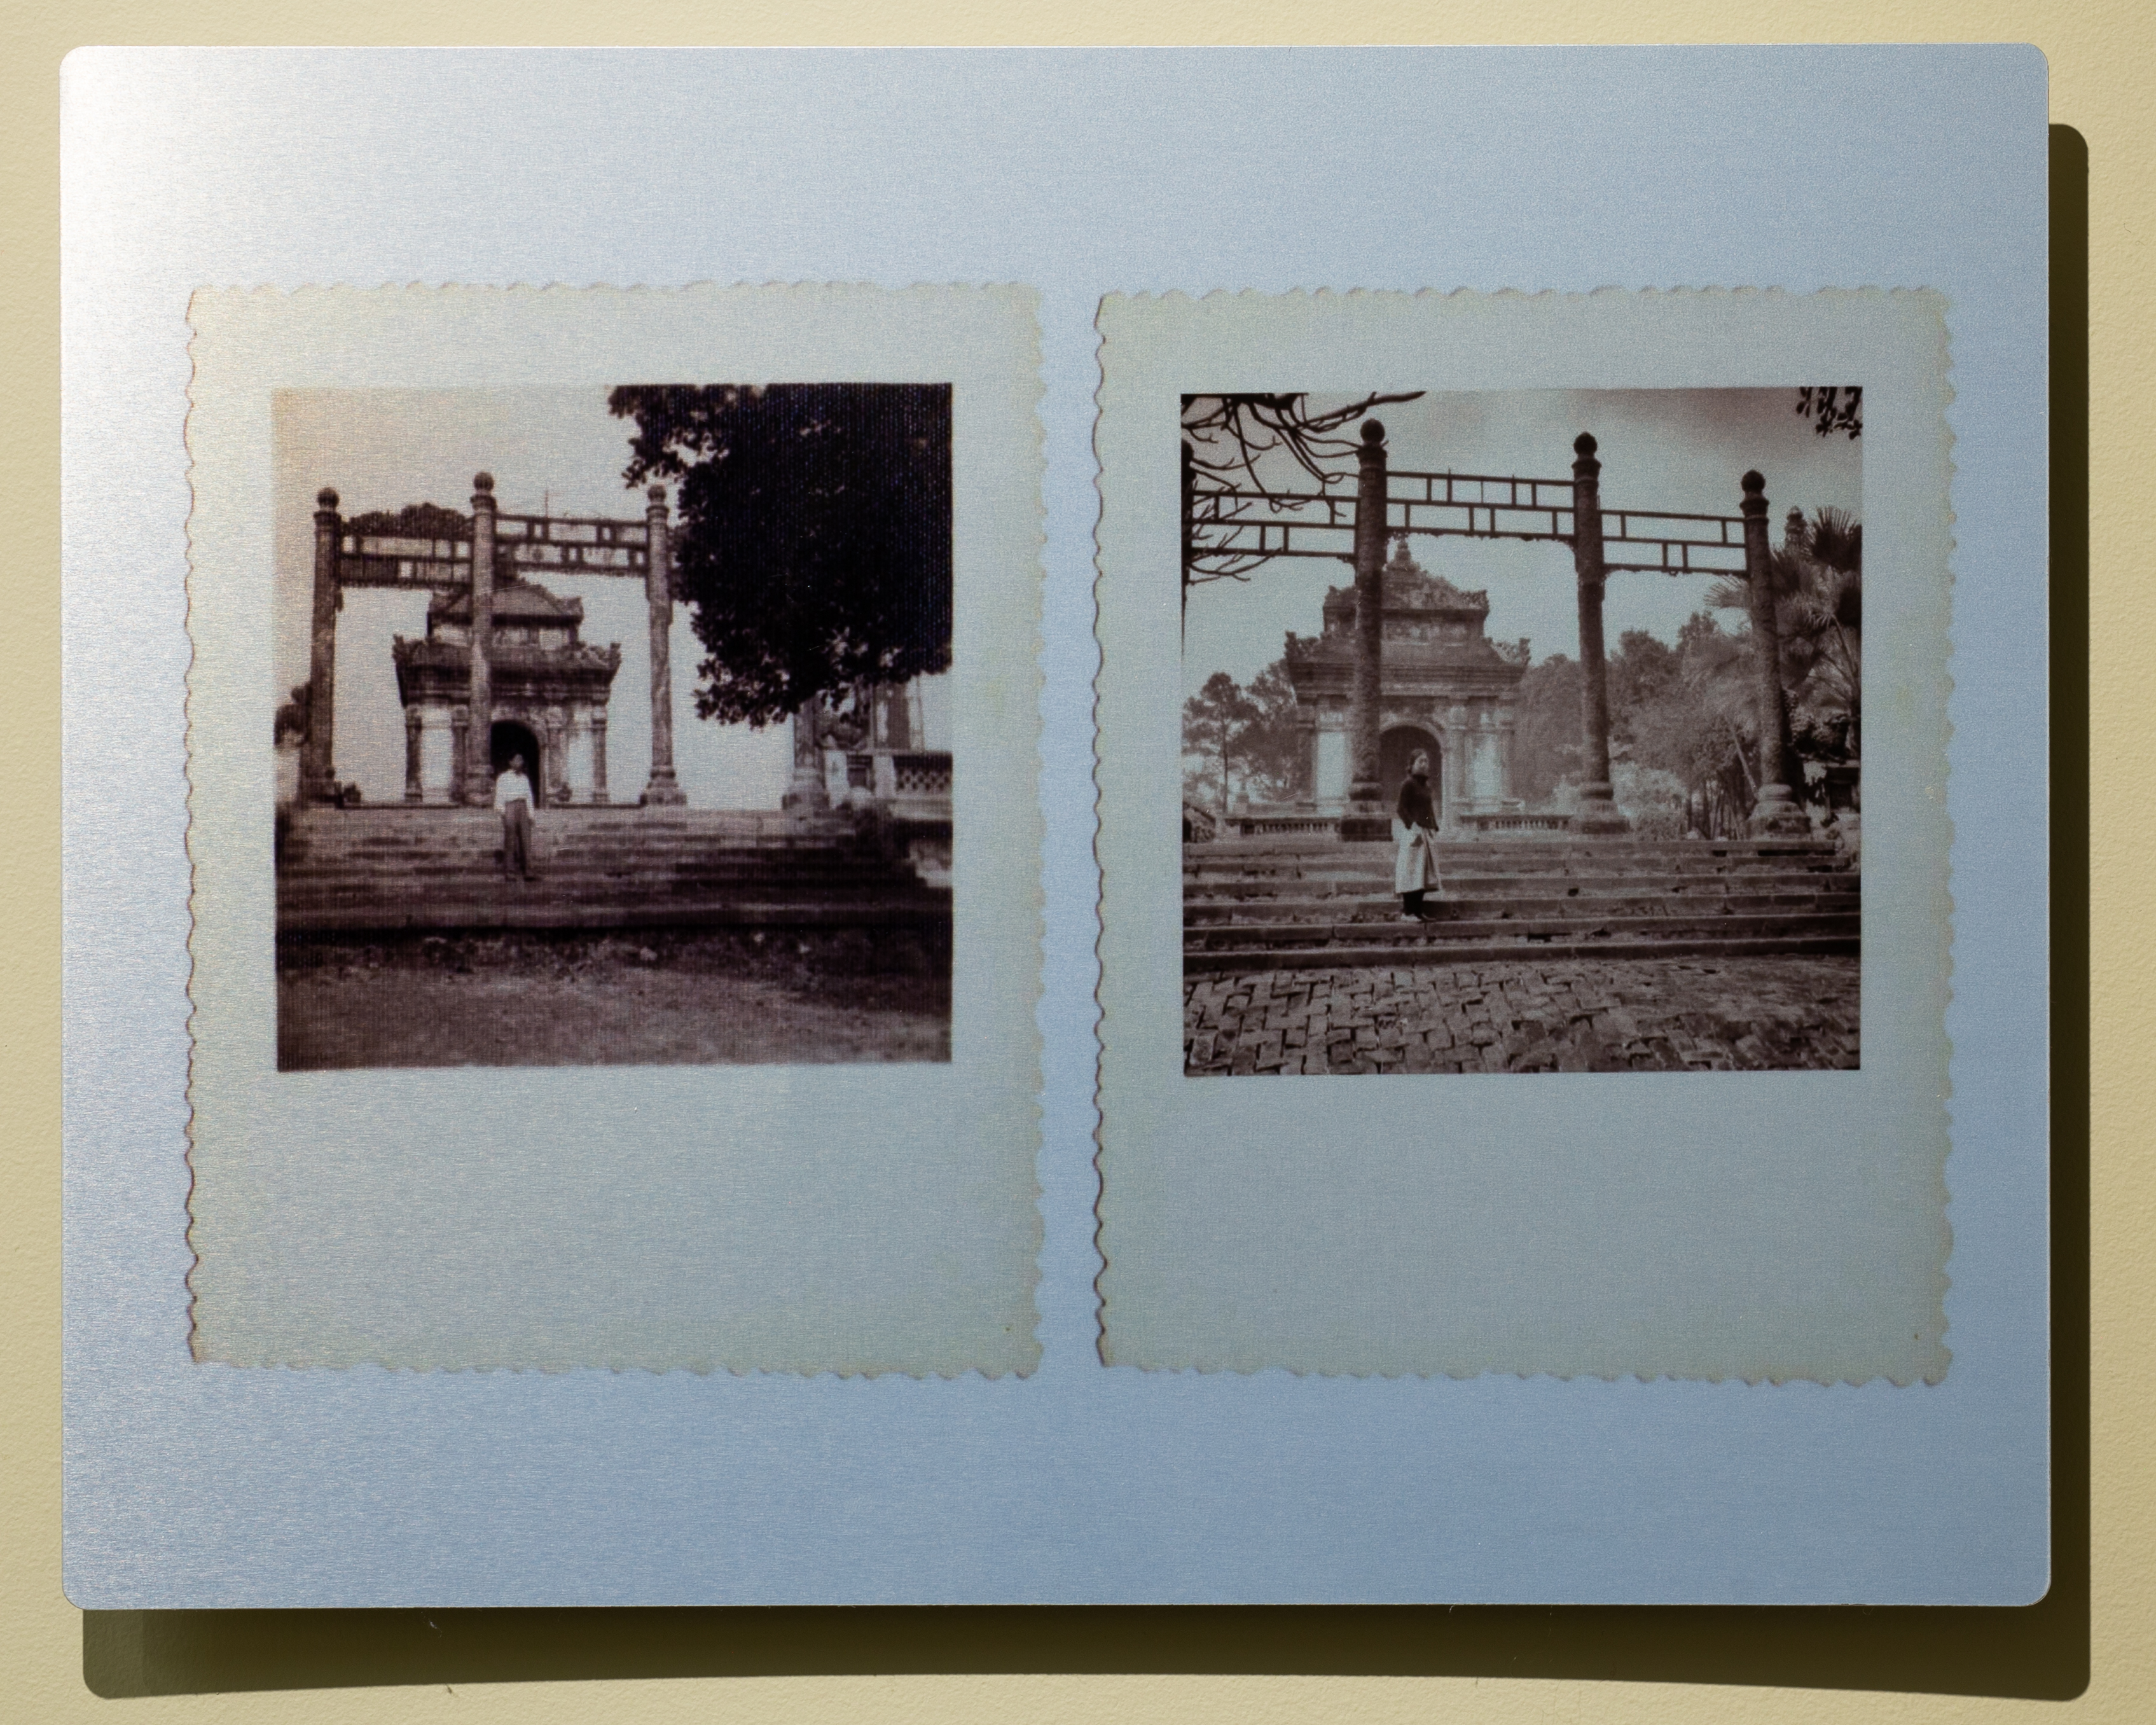 """Quynh Lam, 5 Dong Khanh Mausoleum, 11"""" x 14"""", recreation of old family photograph, aluminum print, 2018"""